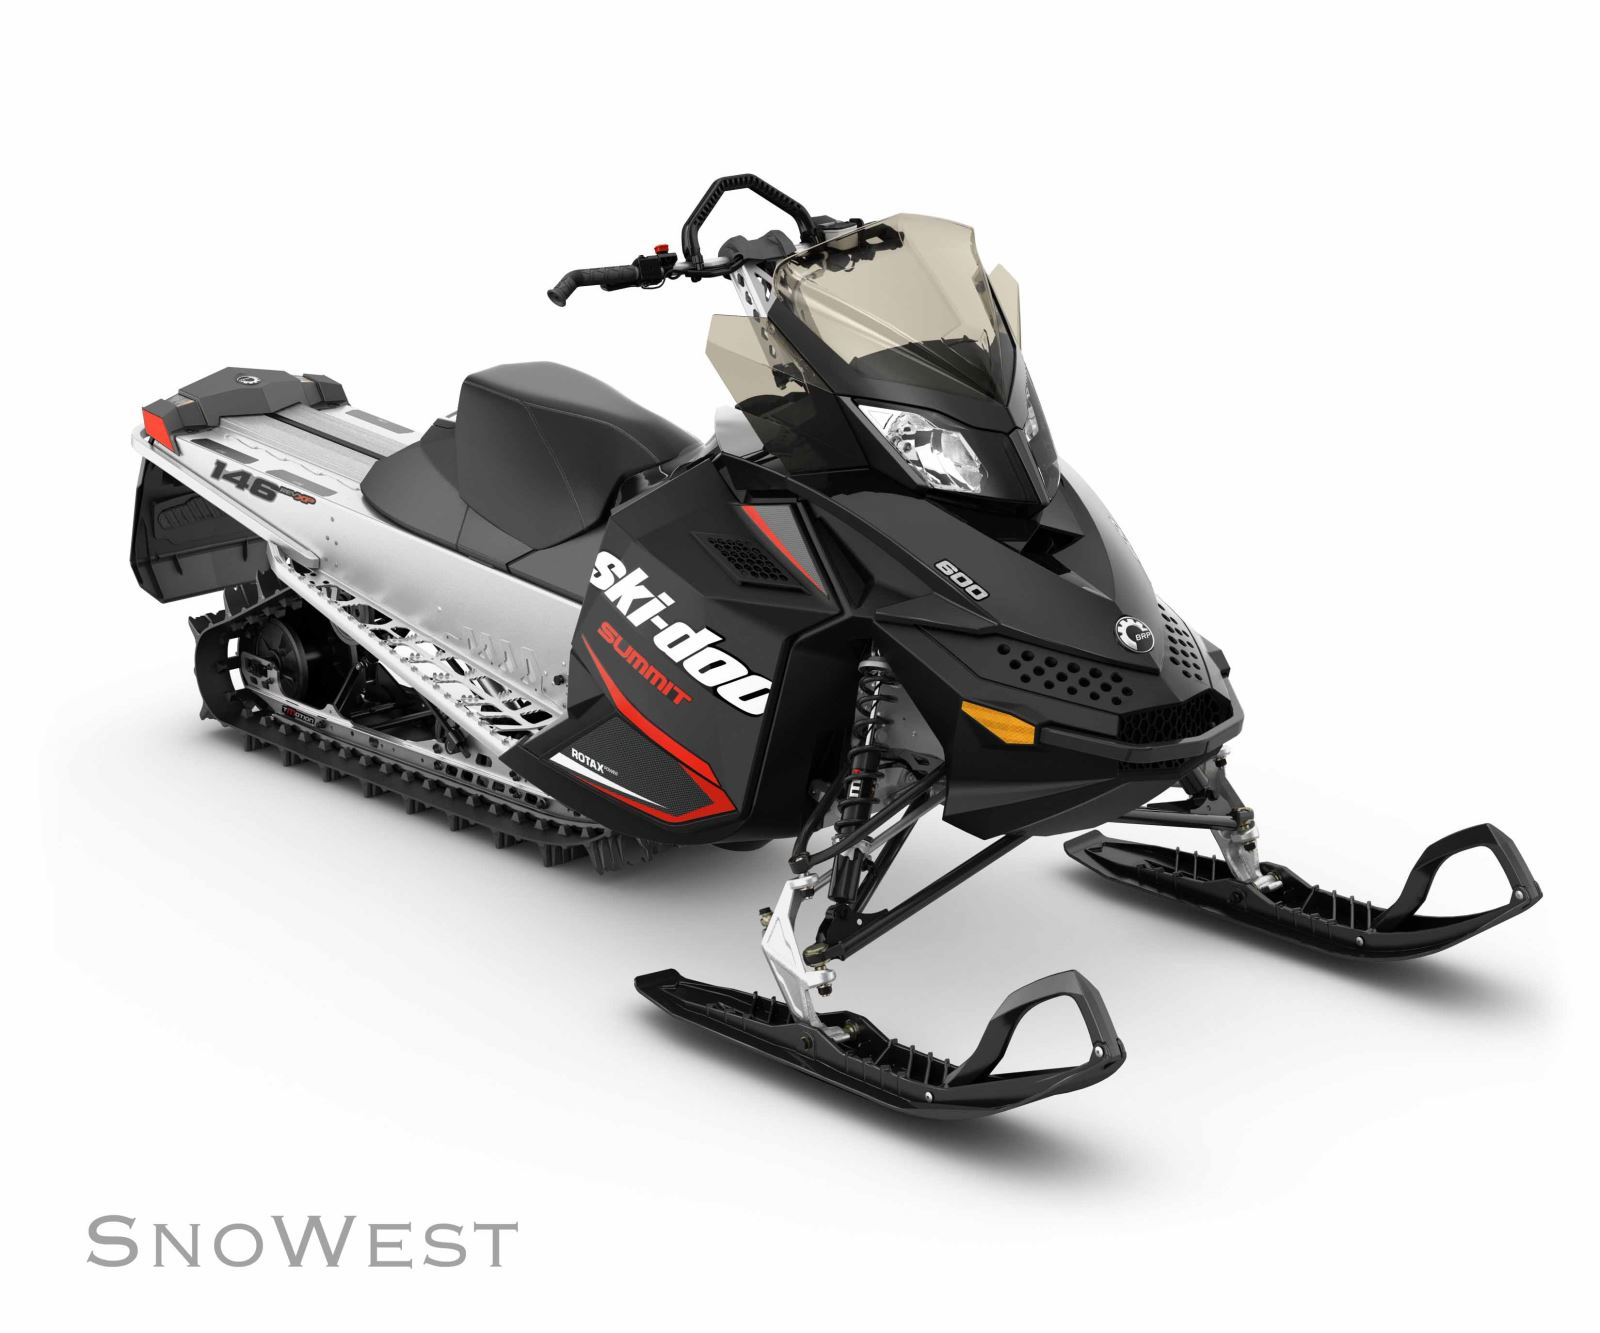 ski doo neu as - photo #20